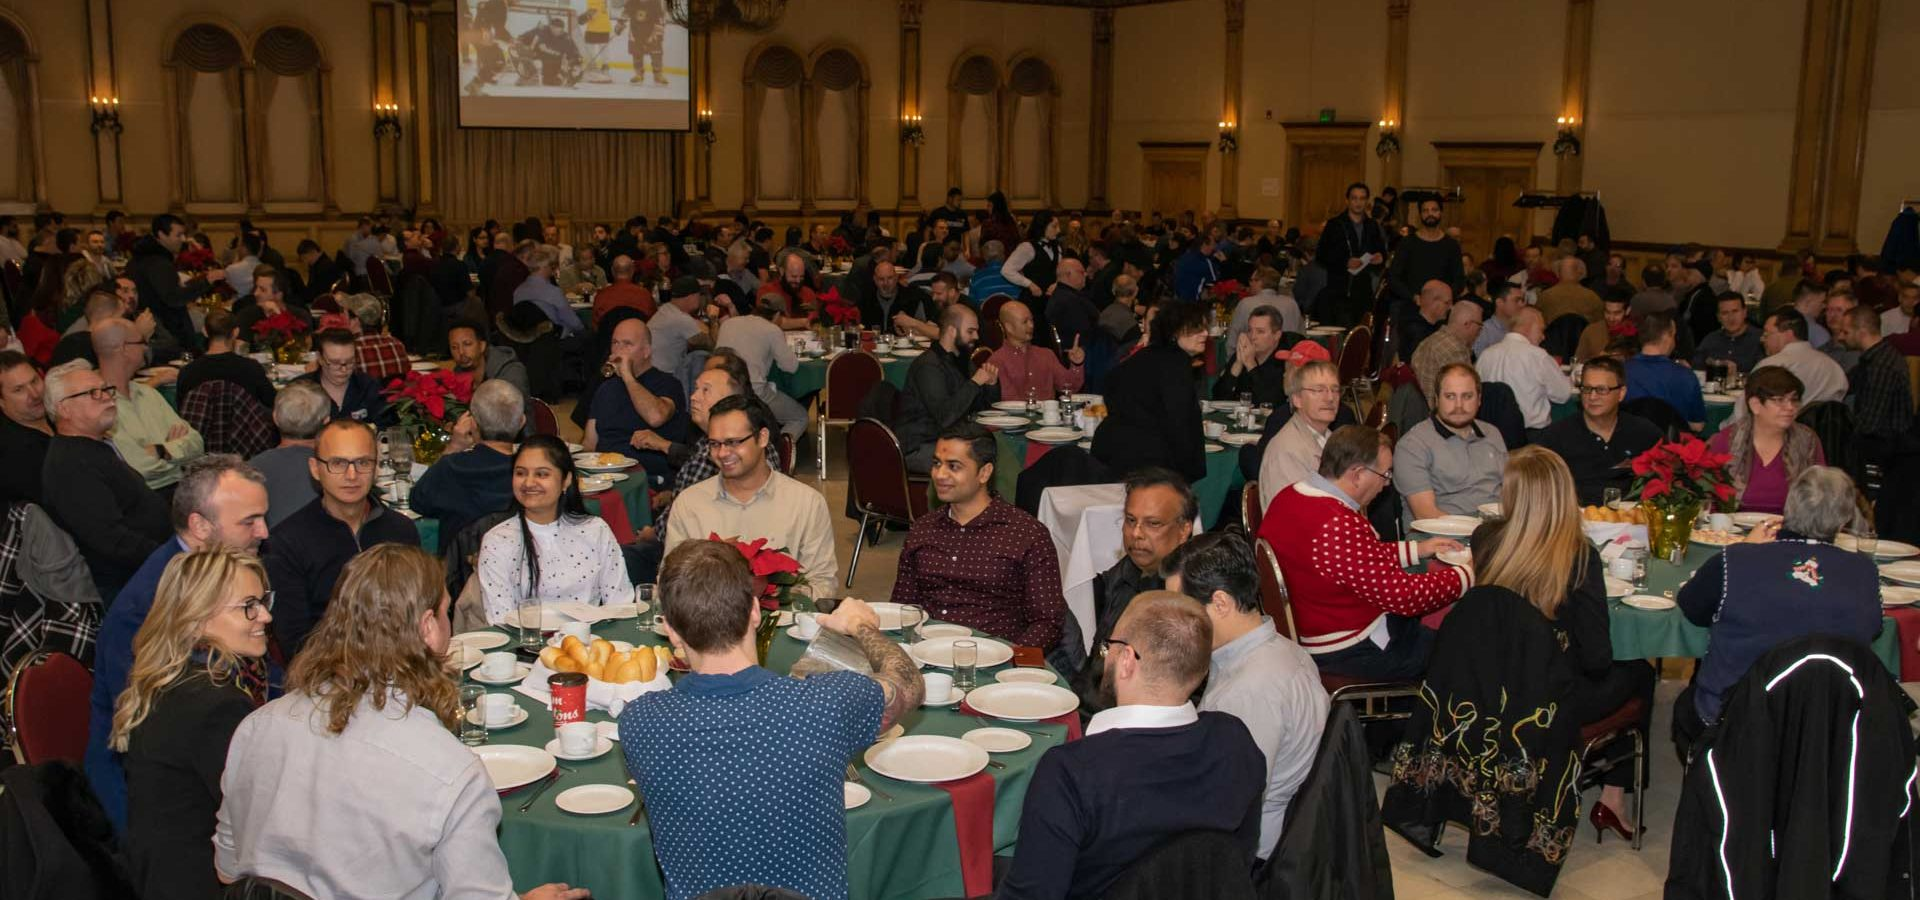 Valianttms Holiday Luncheon Canada 2018 0025